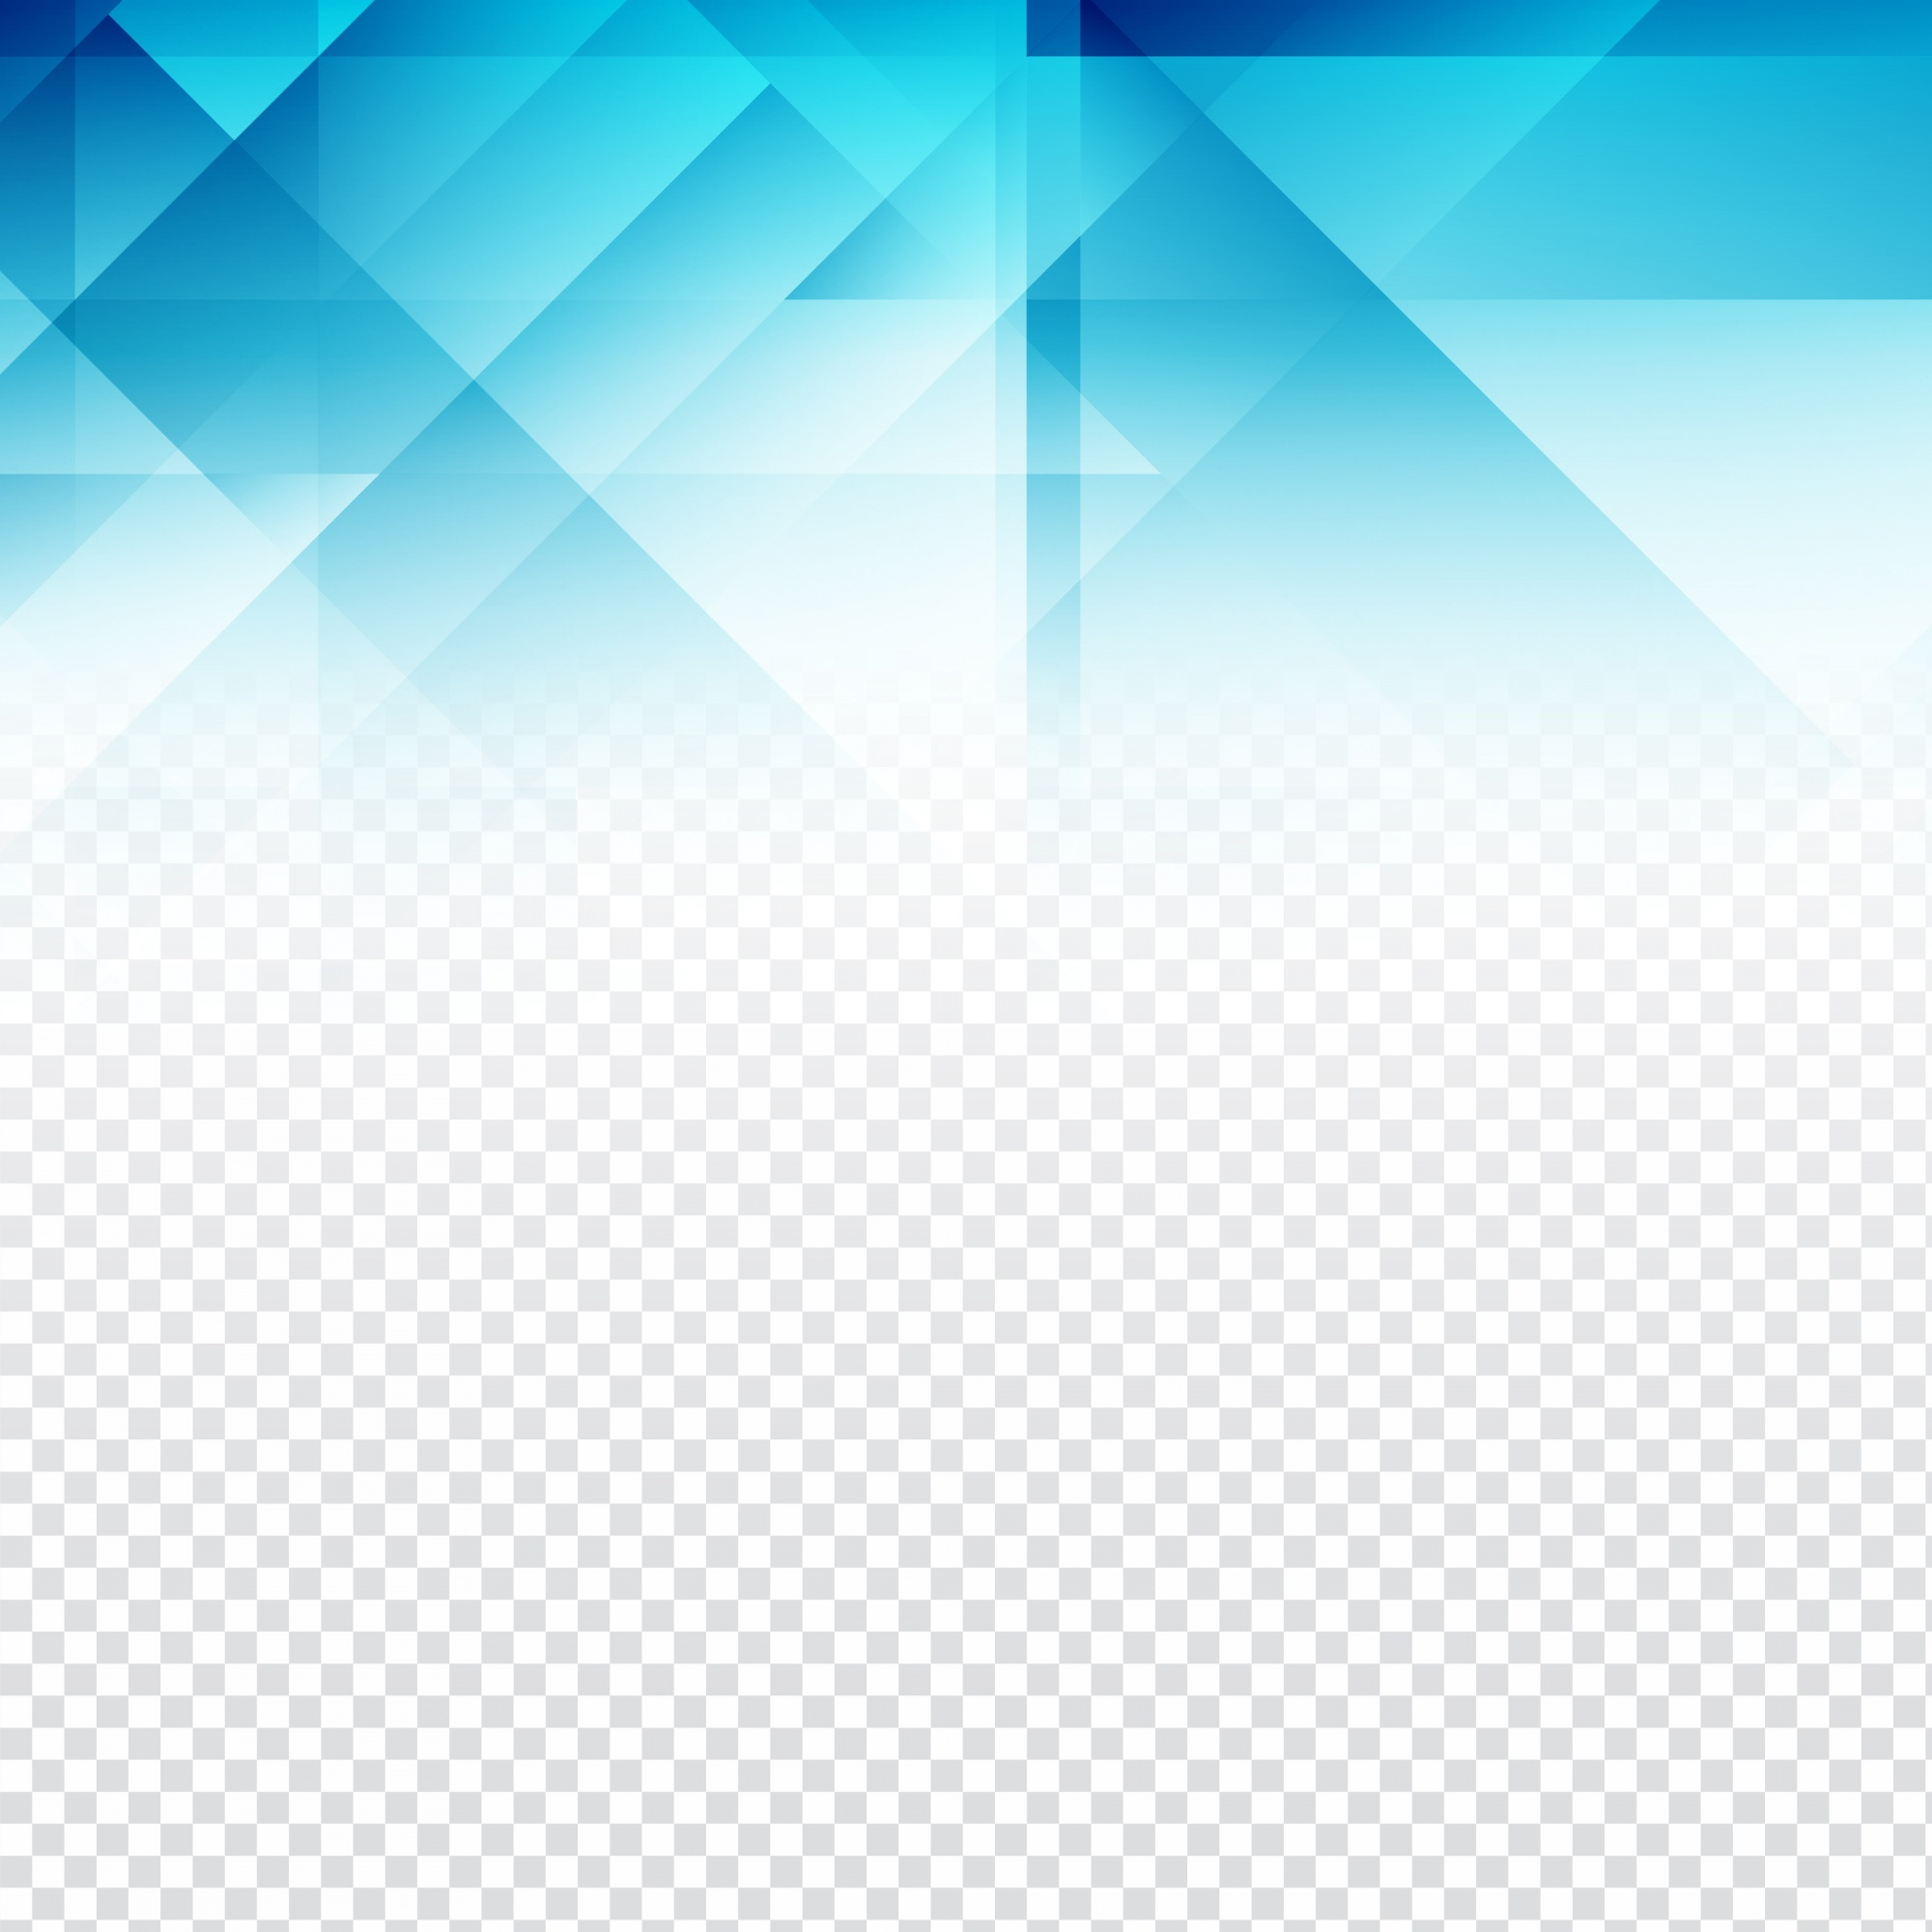 Blue polygonal shapes for backgrounds